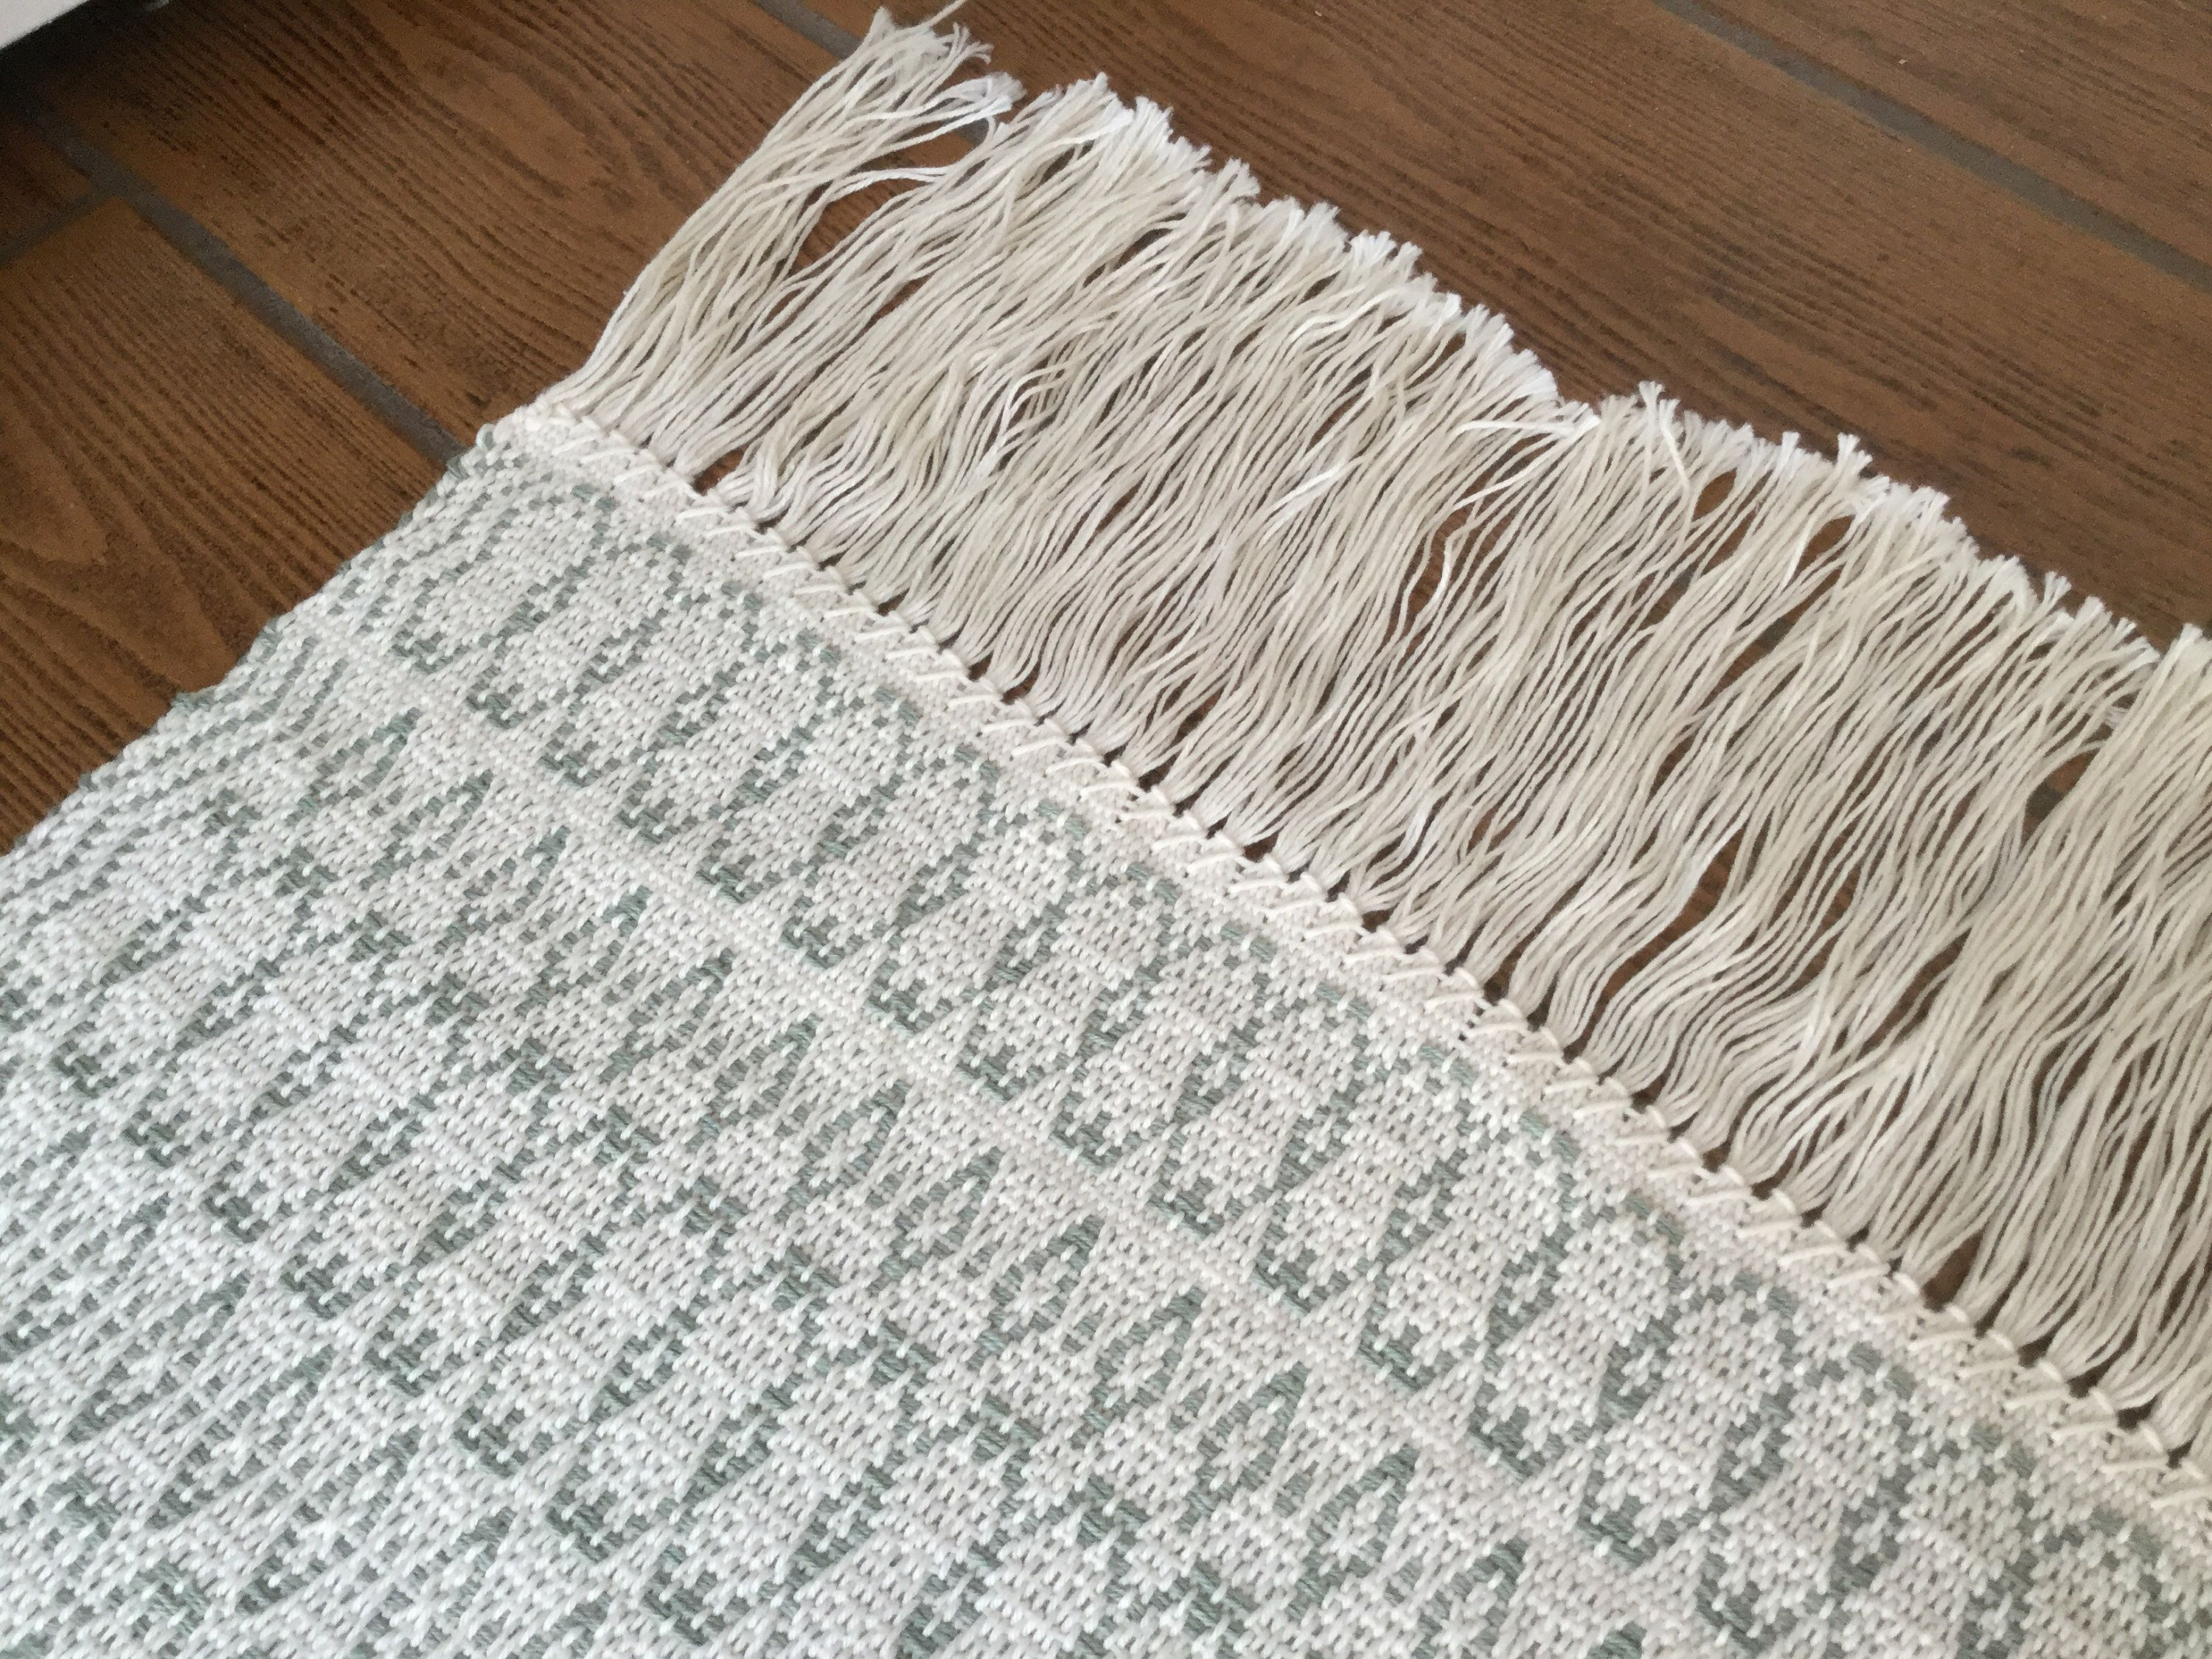 Scandinavian Kitchen Area Rug Woven In Washable Cotton